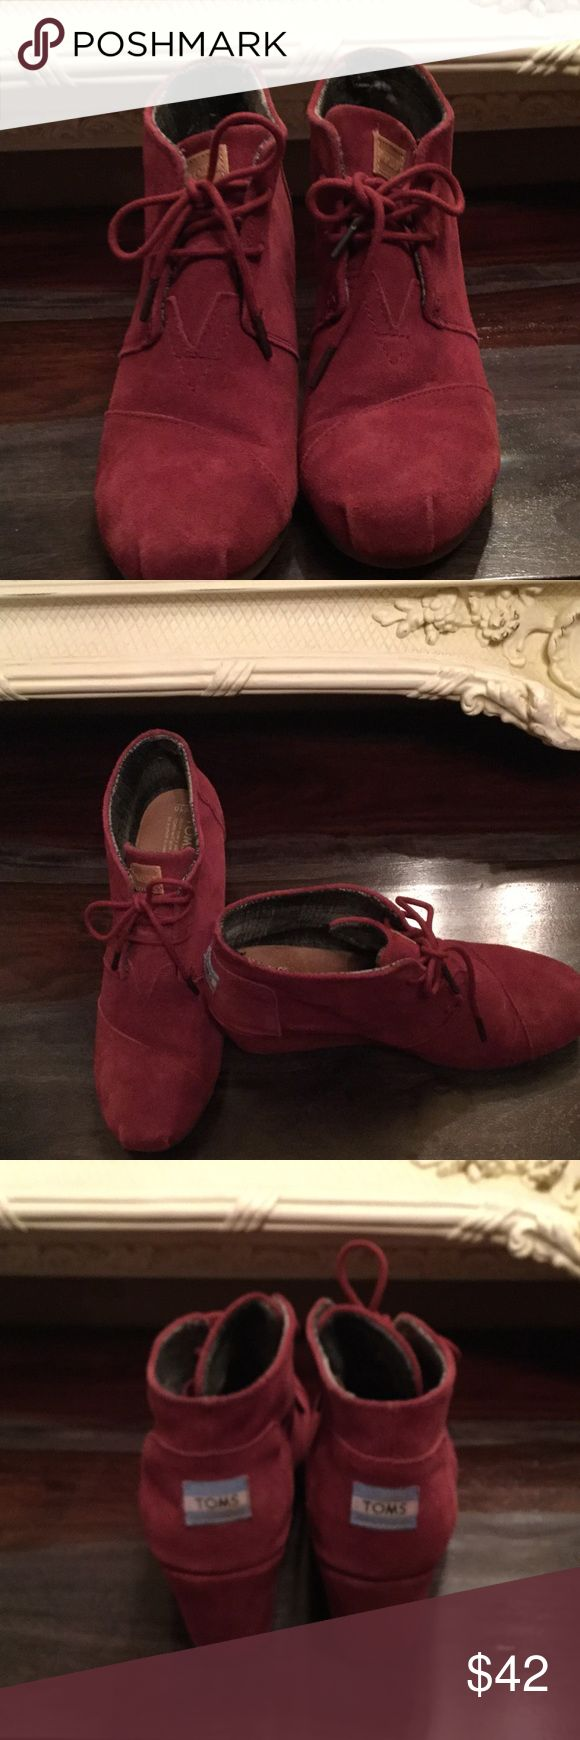 """Toms Desert Wedge Bootie Toms Desert Wedge Burgundy Bootie.                   Excellent Condition!!!!                         Asymmetrical topstitching - Lace-up vamp closure - Wedge heel  - Approx. 2.5"""" heel TOMS Shoes Ankle Boots & Booties"""